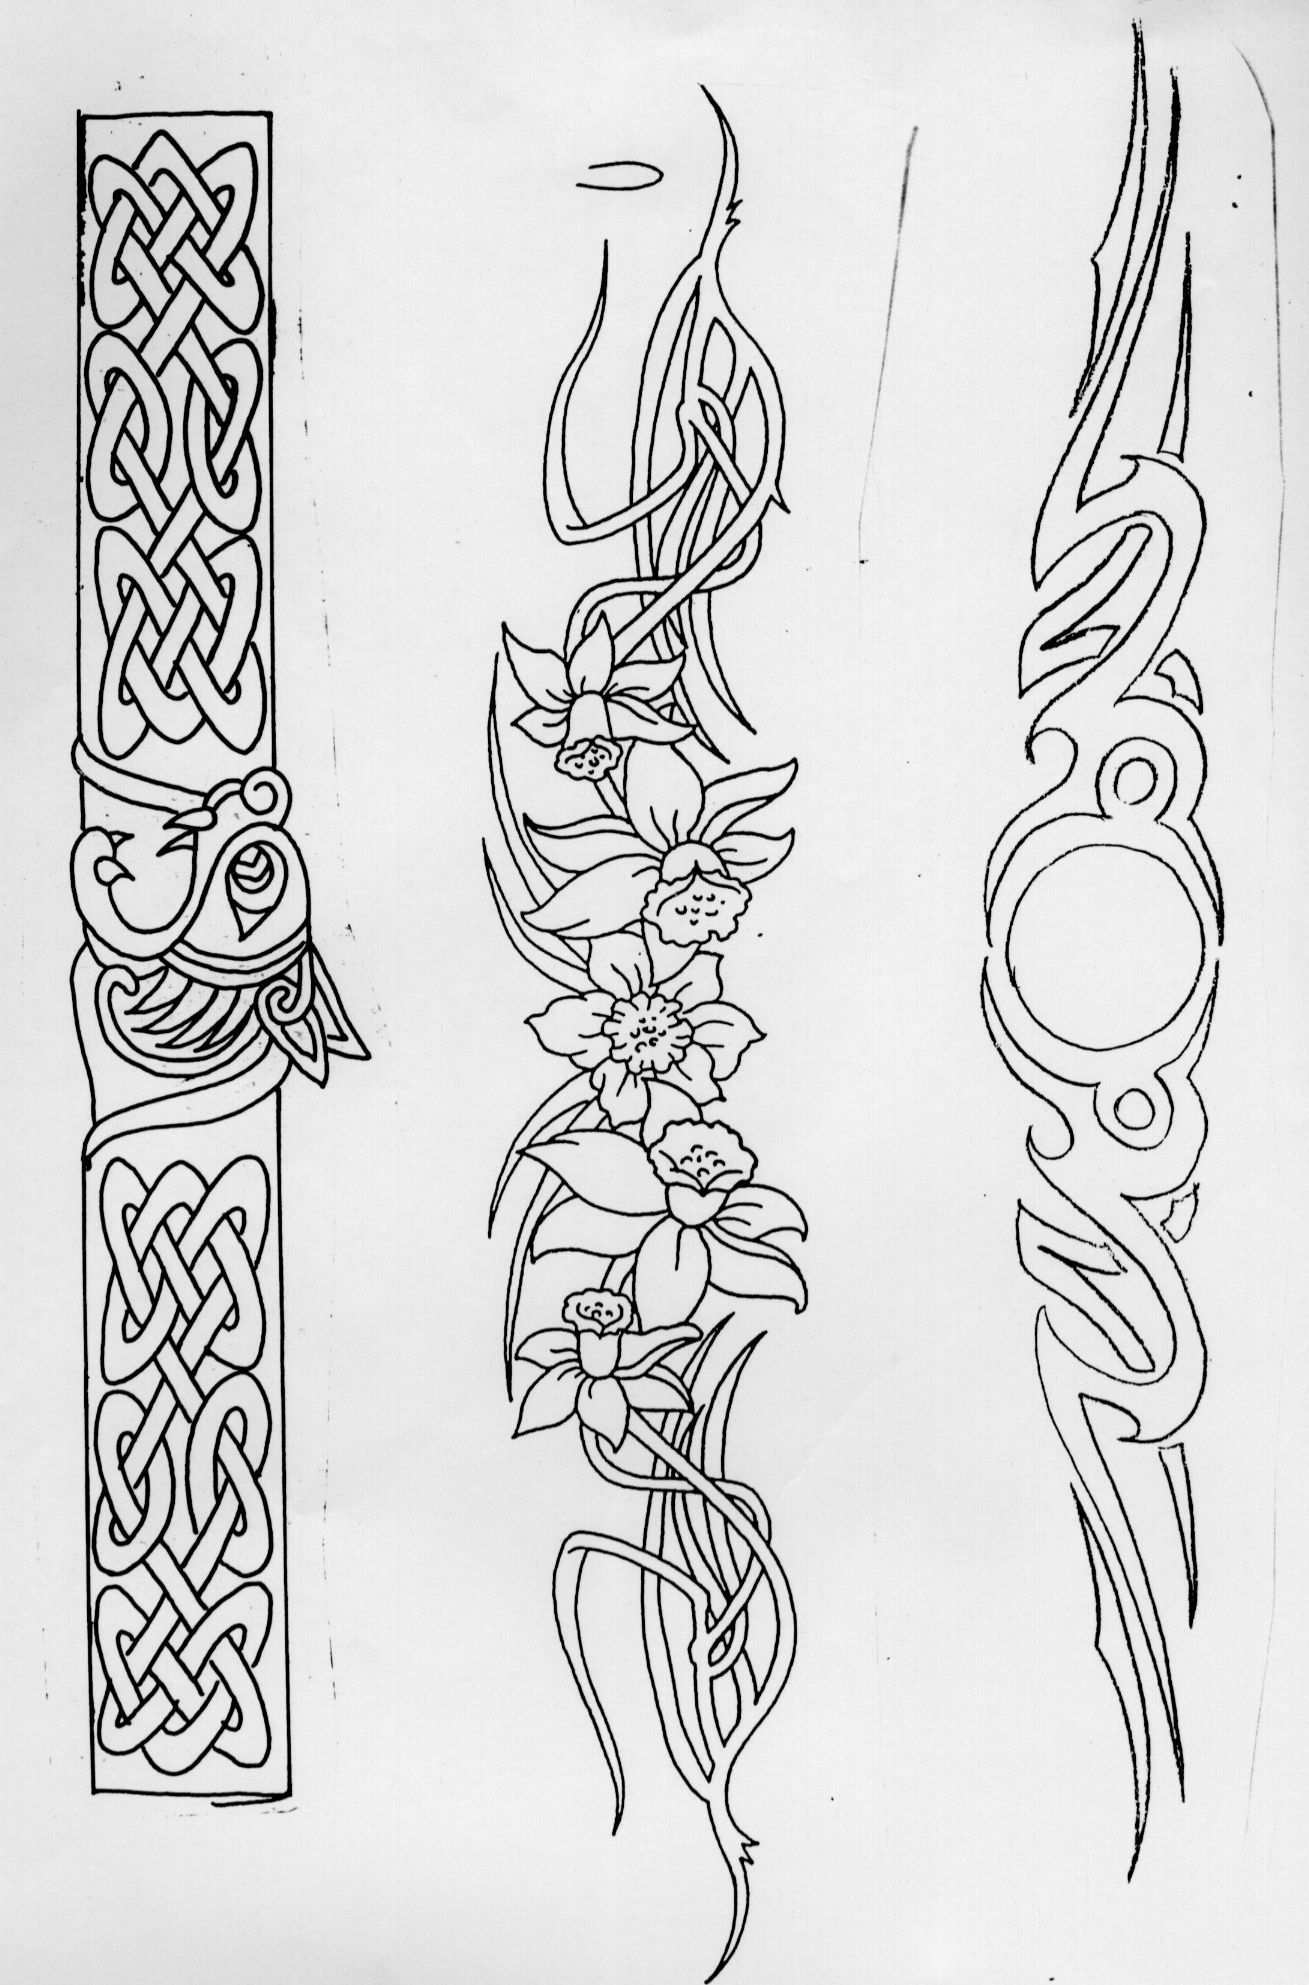 Arm Band Tattoos 56arm24 Jpg Follow Link To Print Full Size Image Http Tattoo Advisor Com Tattoo Images Celtic Patterns Leather Tooling Patterns Celtic Art